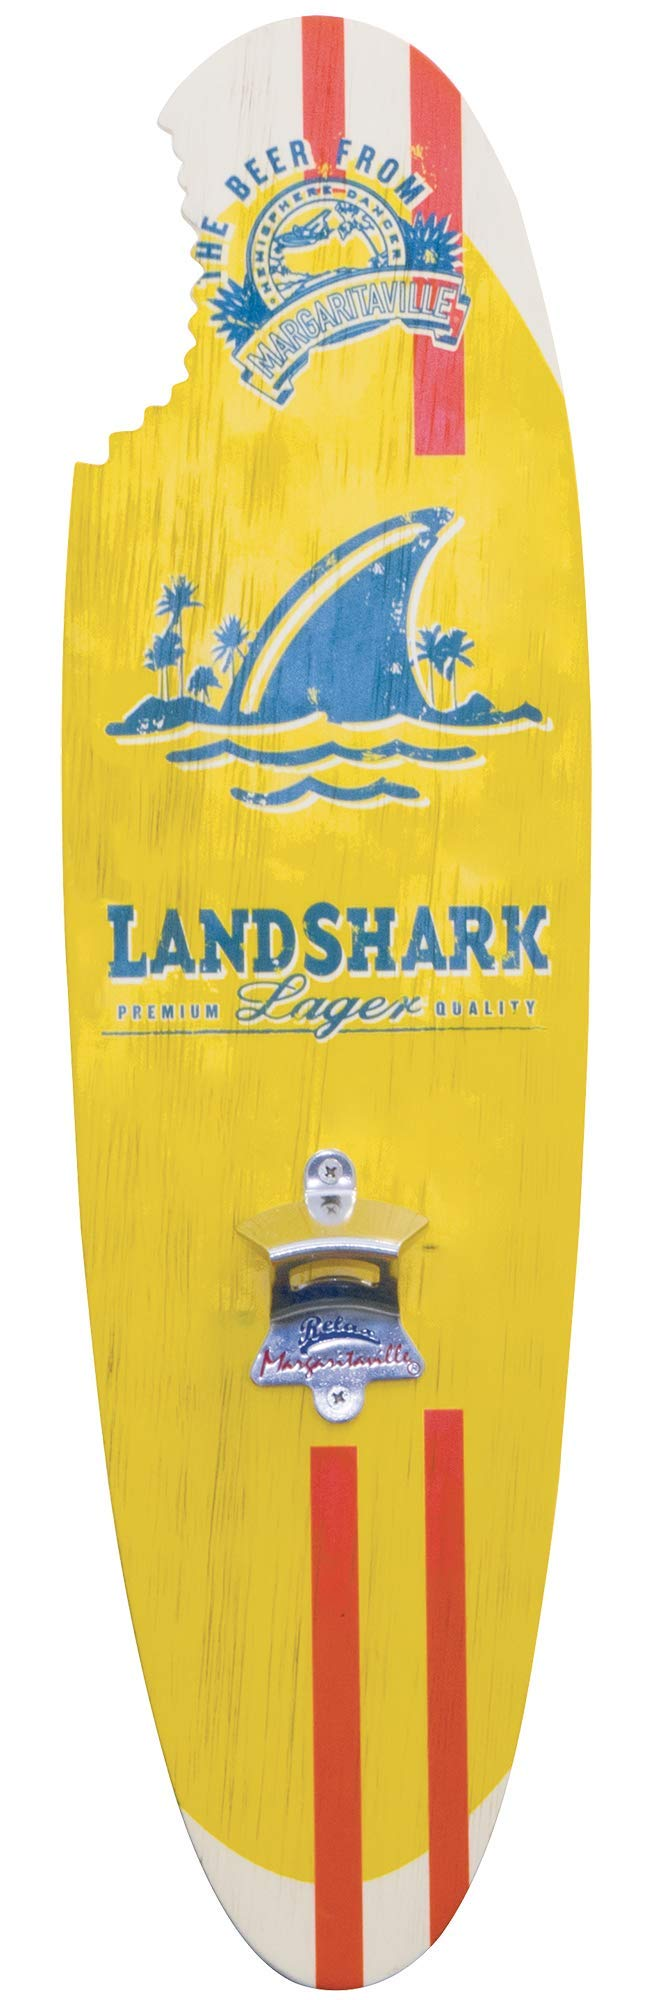 Margaritaville Landshark Indoor/Outdoor Bottle Opener Surfboard Shaped Garden Sign with Magnetic Cap Catcher Wooden Wall Art